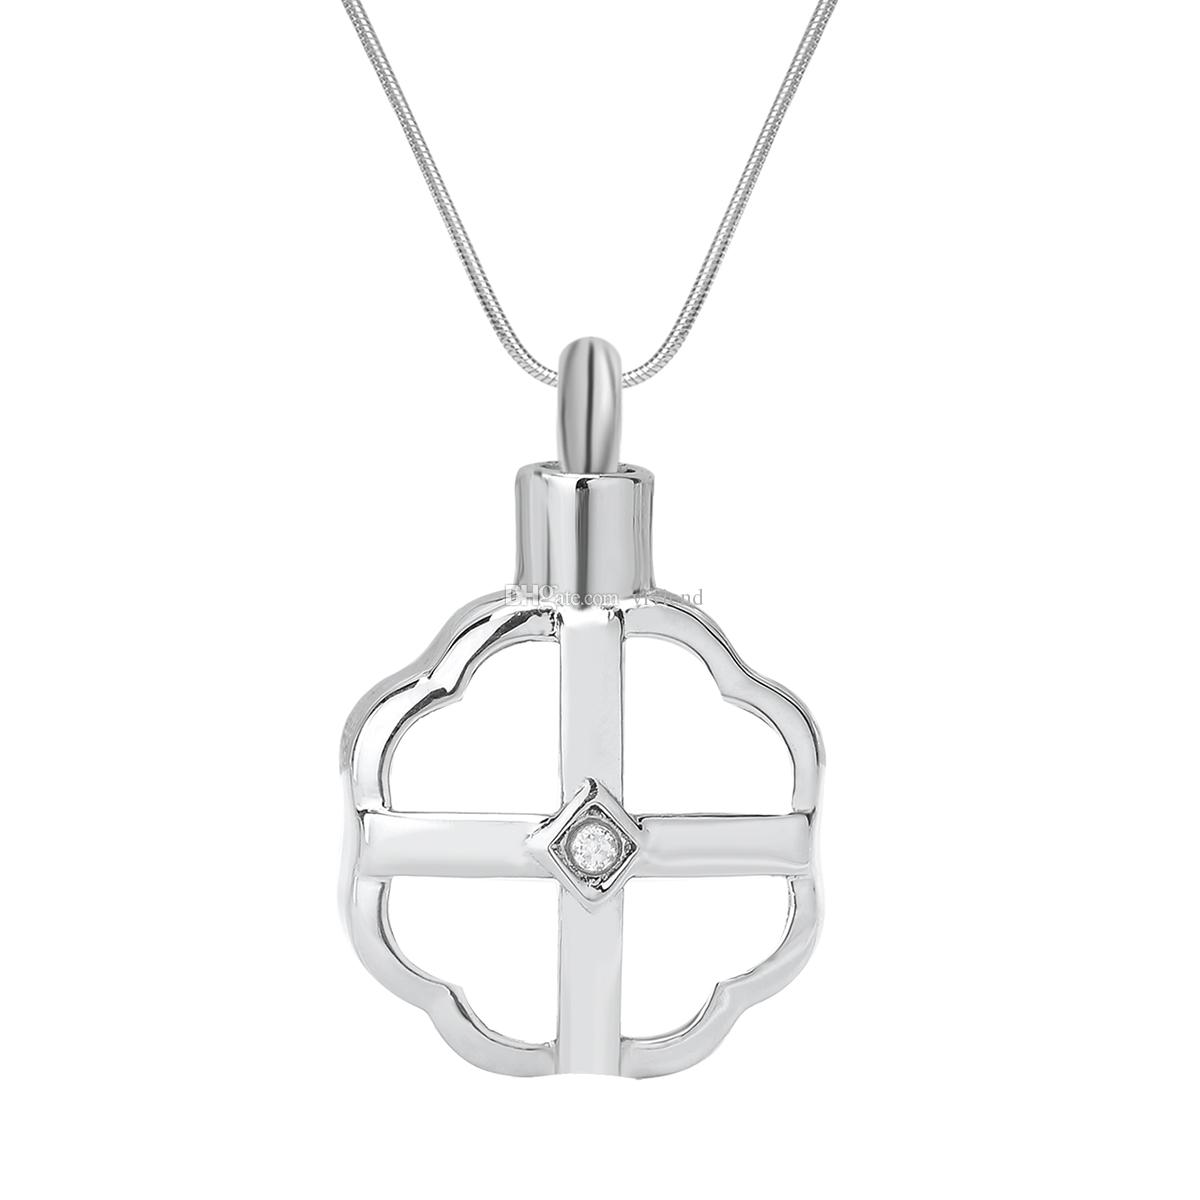 Hand Cross Cremation Urn Keepsake Memorial DIY Charms Pendant for Necklace